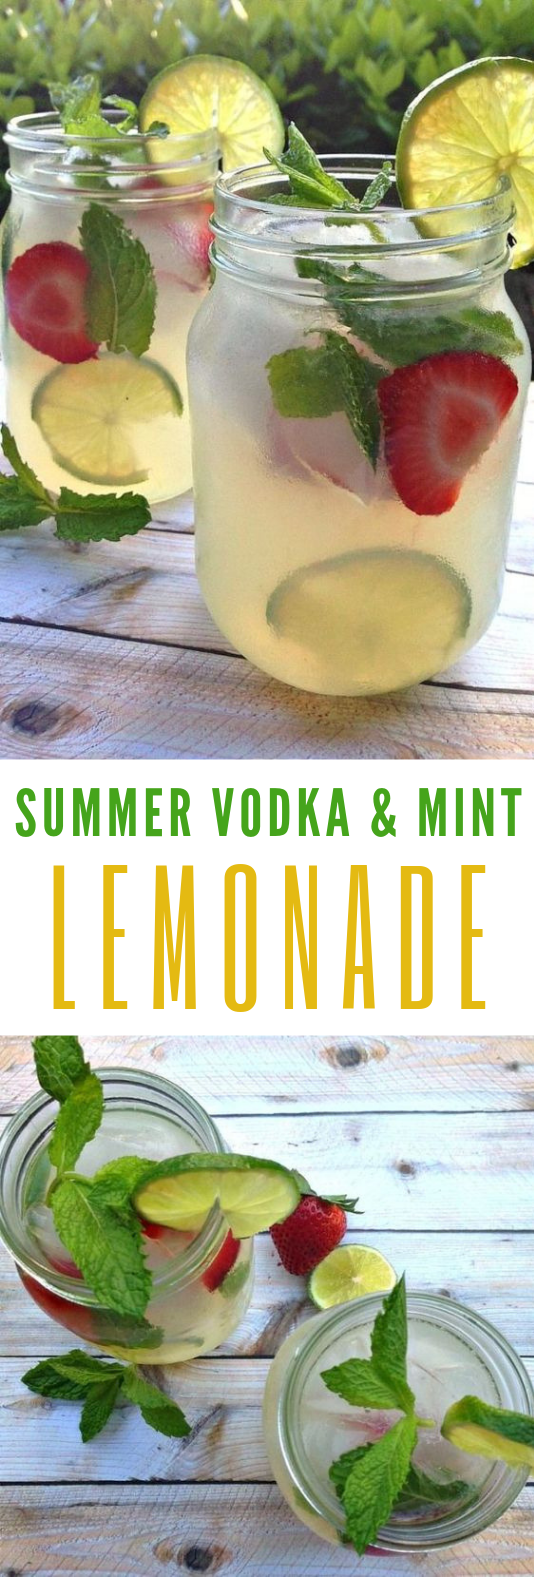 Refreshing Summer Drinks: Vodka Mint Lemonade Cocktail With Stoli #Cocktail #SummerDrinks #refreshingsummerdrinks